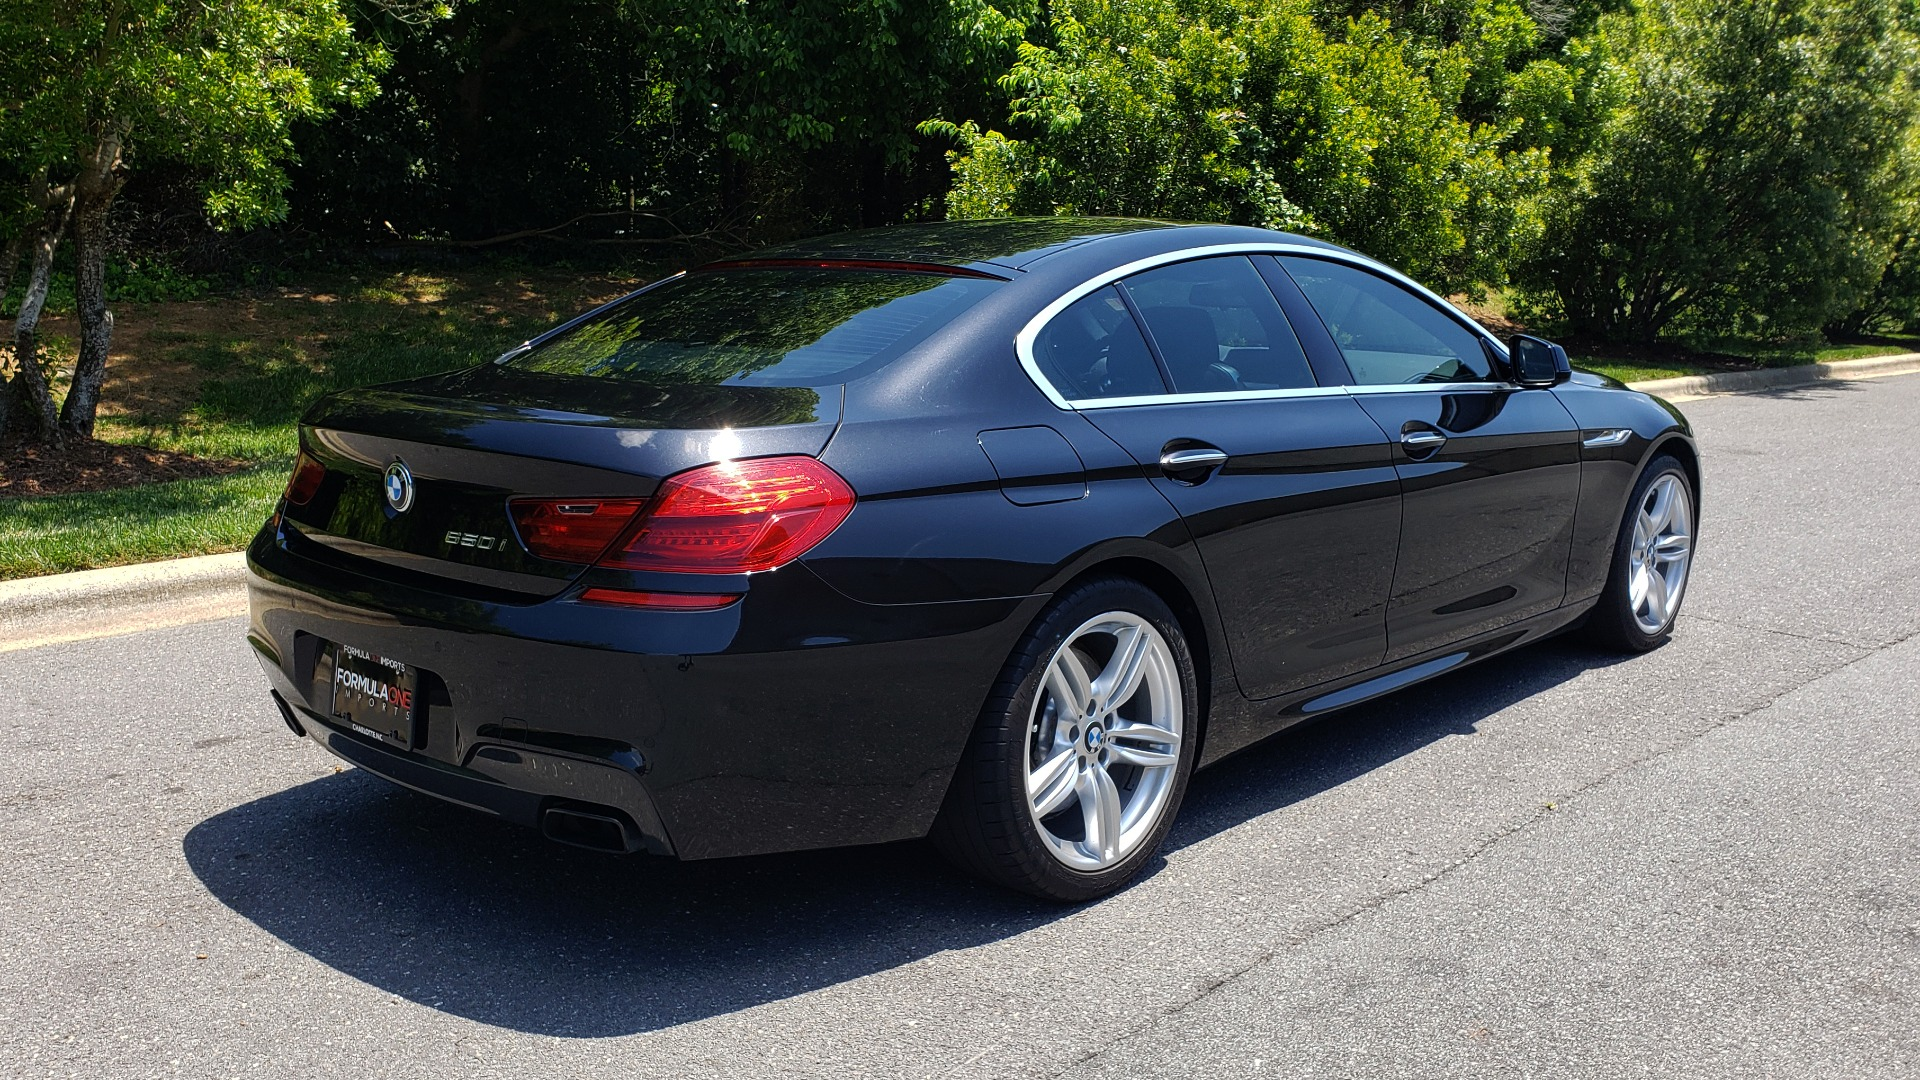 Used 2013 BMW 6 SERIES 650I GRANCOUPE / M-SPORT / LUXURY / NAV / SUNROOF / HTD STS for sale Sold at Formula Imports in Charlotte NC 28227 8